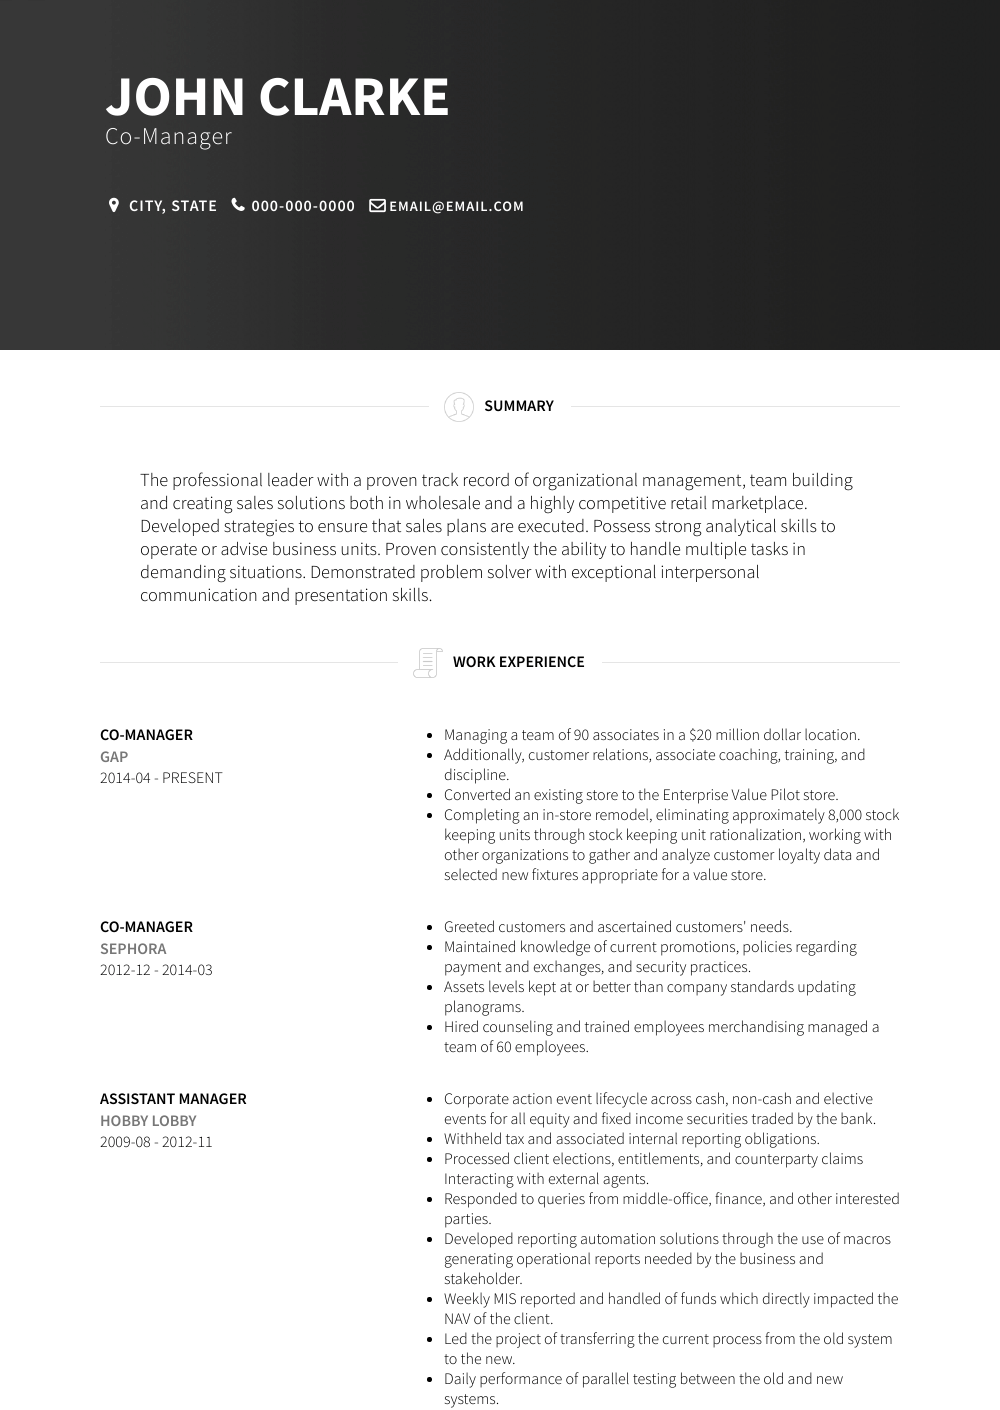 Co-manager - Resume Samples & Templates | VisualCV